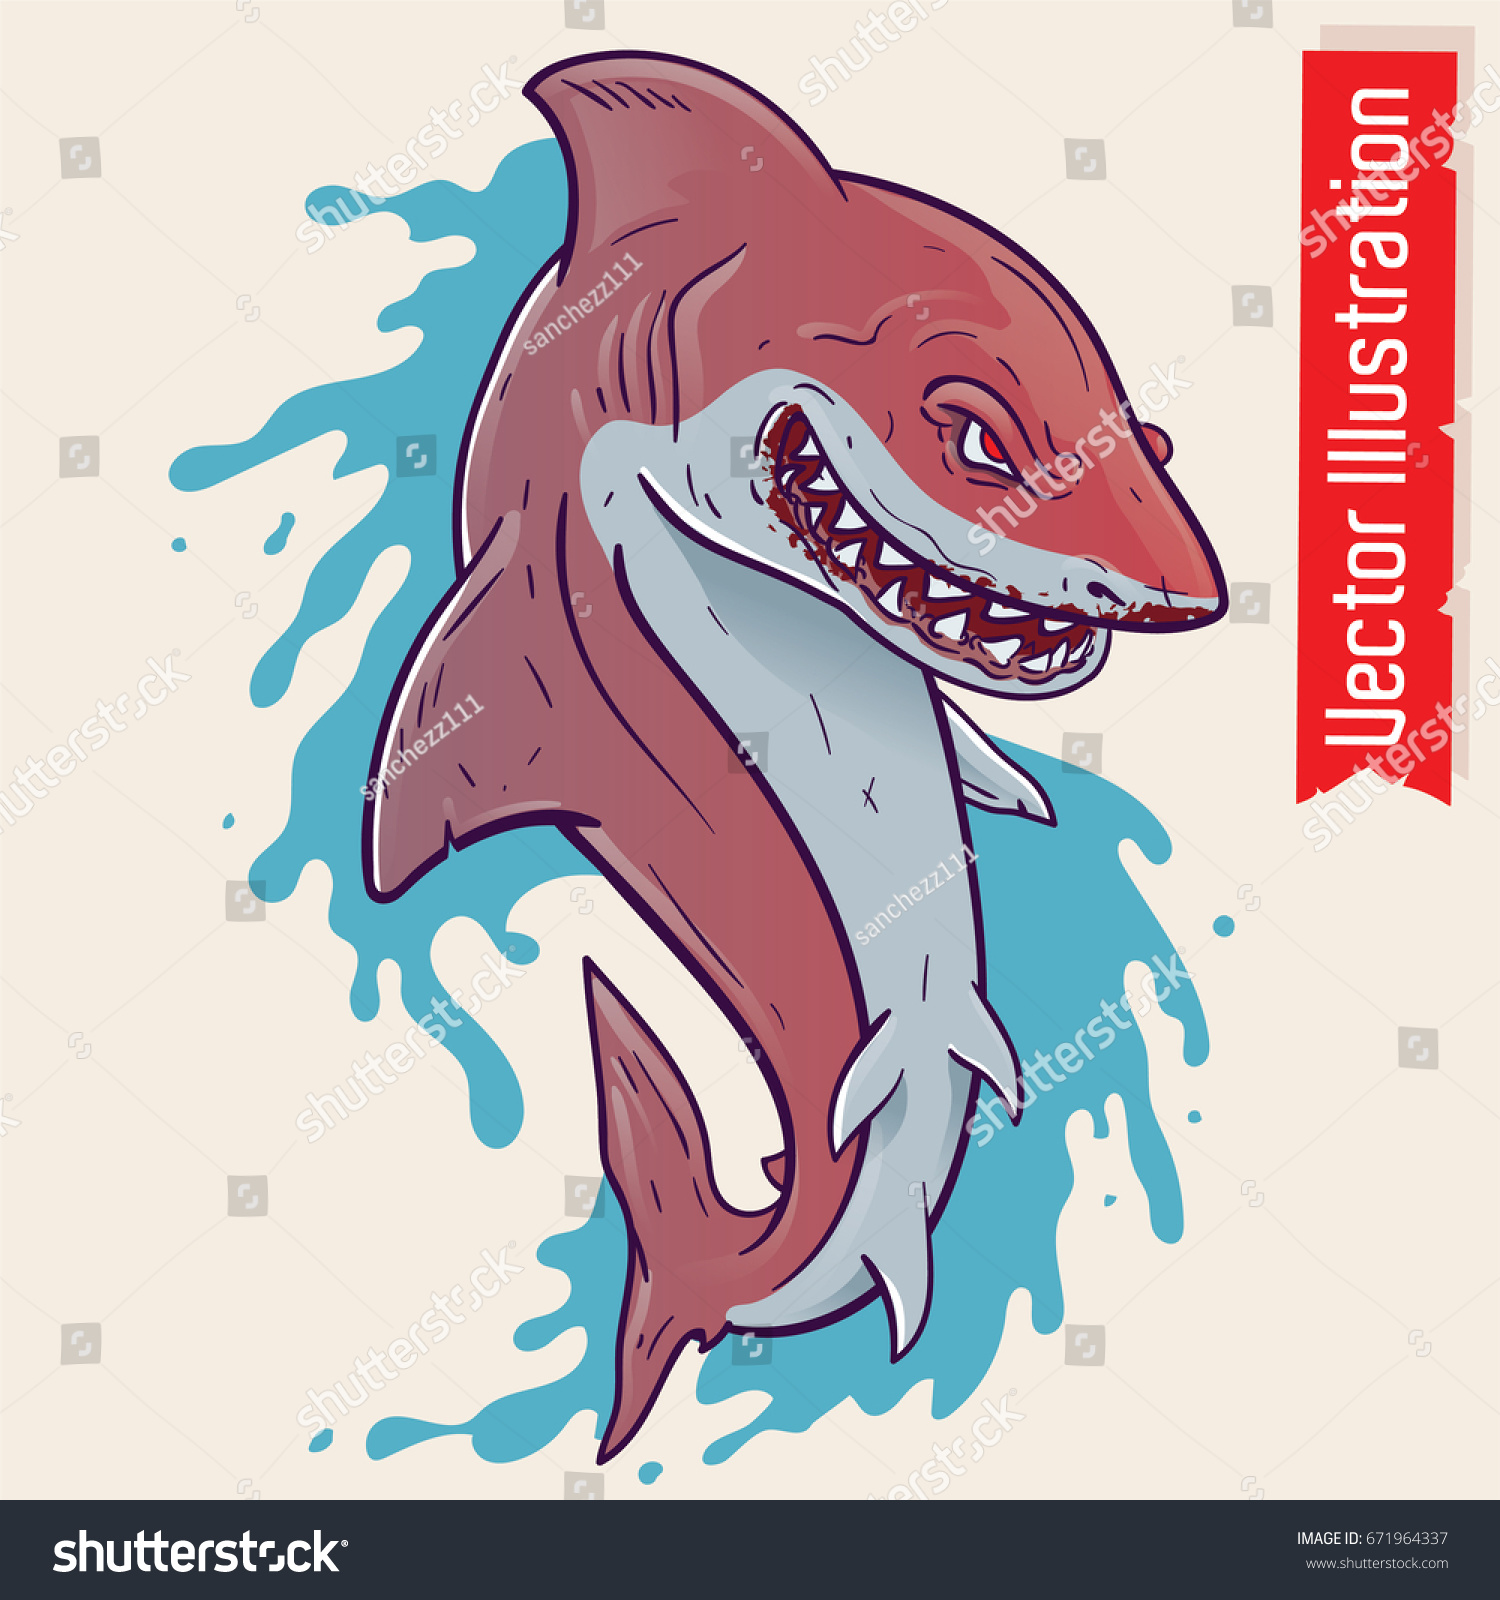 shark open mouth shark tattoo prints stock vector 671964337